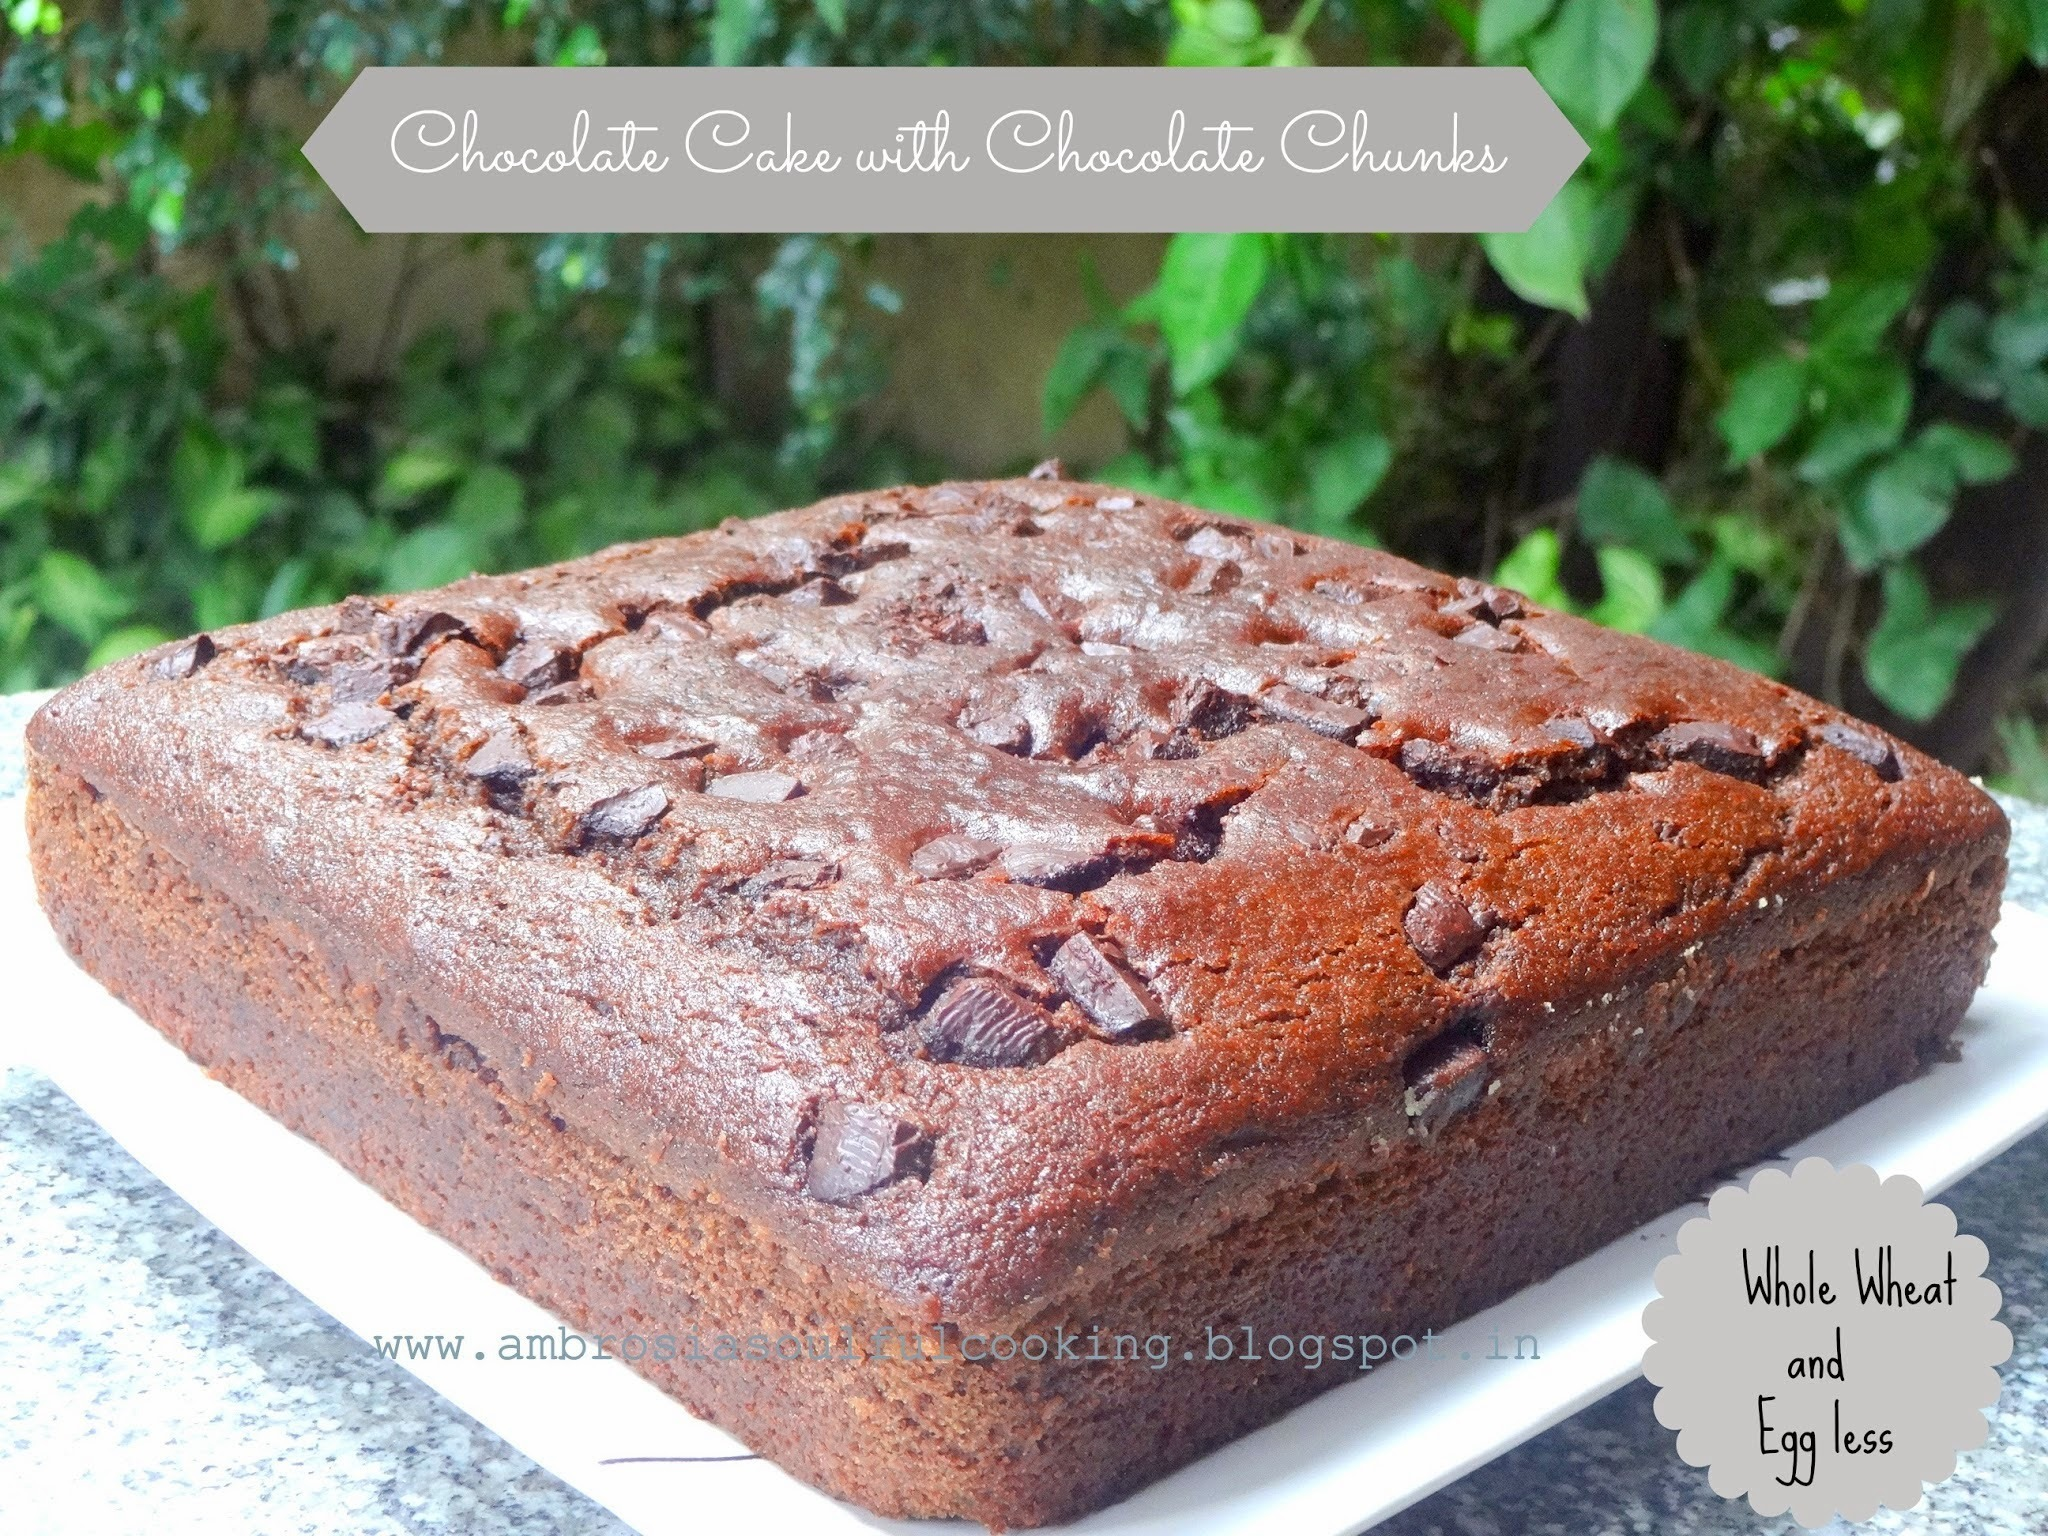 Egg less Whole Wheat Chocolate Cake With Chocolate Chunks